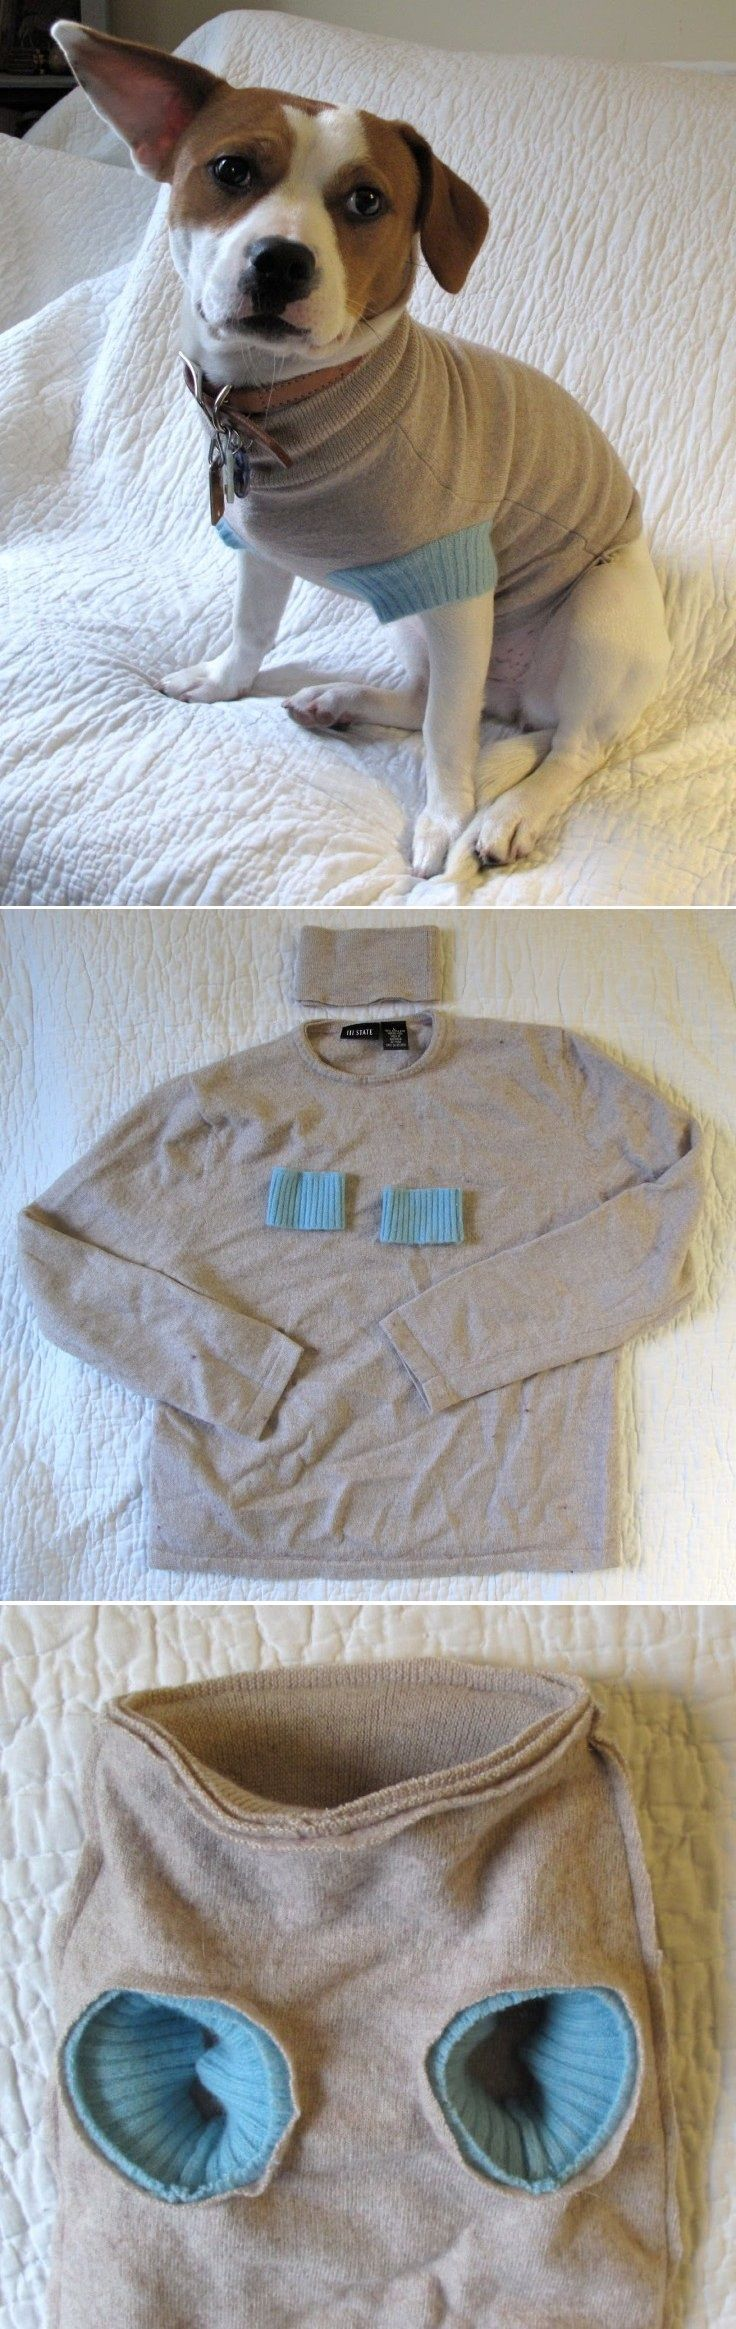 DIY this dog sweater using your old one! Waste not, want not – and Fido gets some new duds.